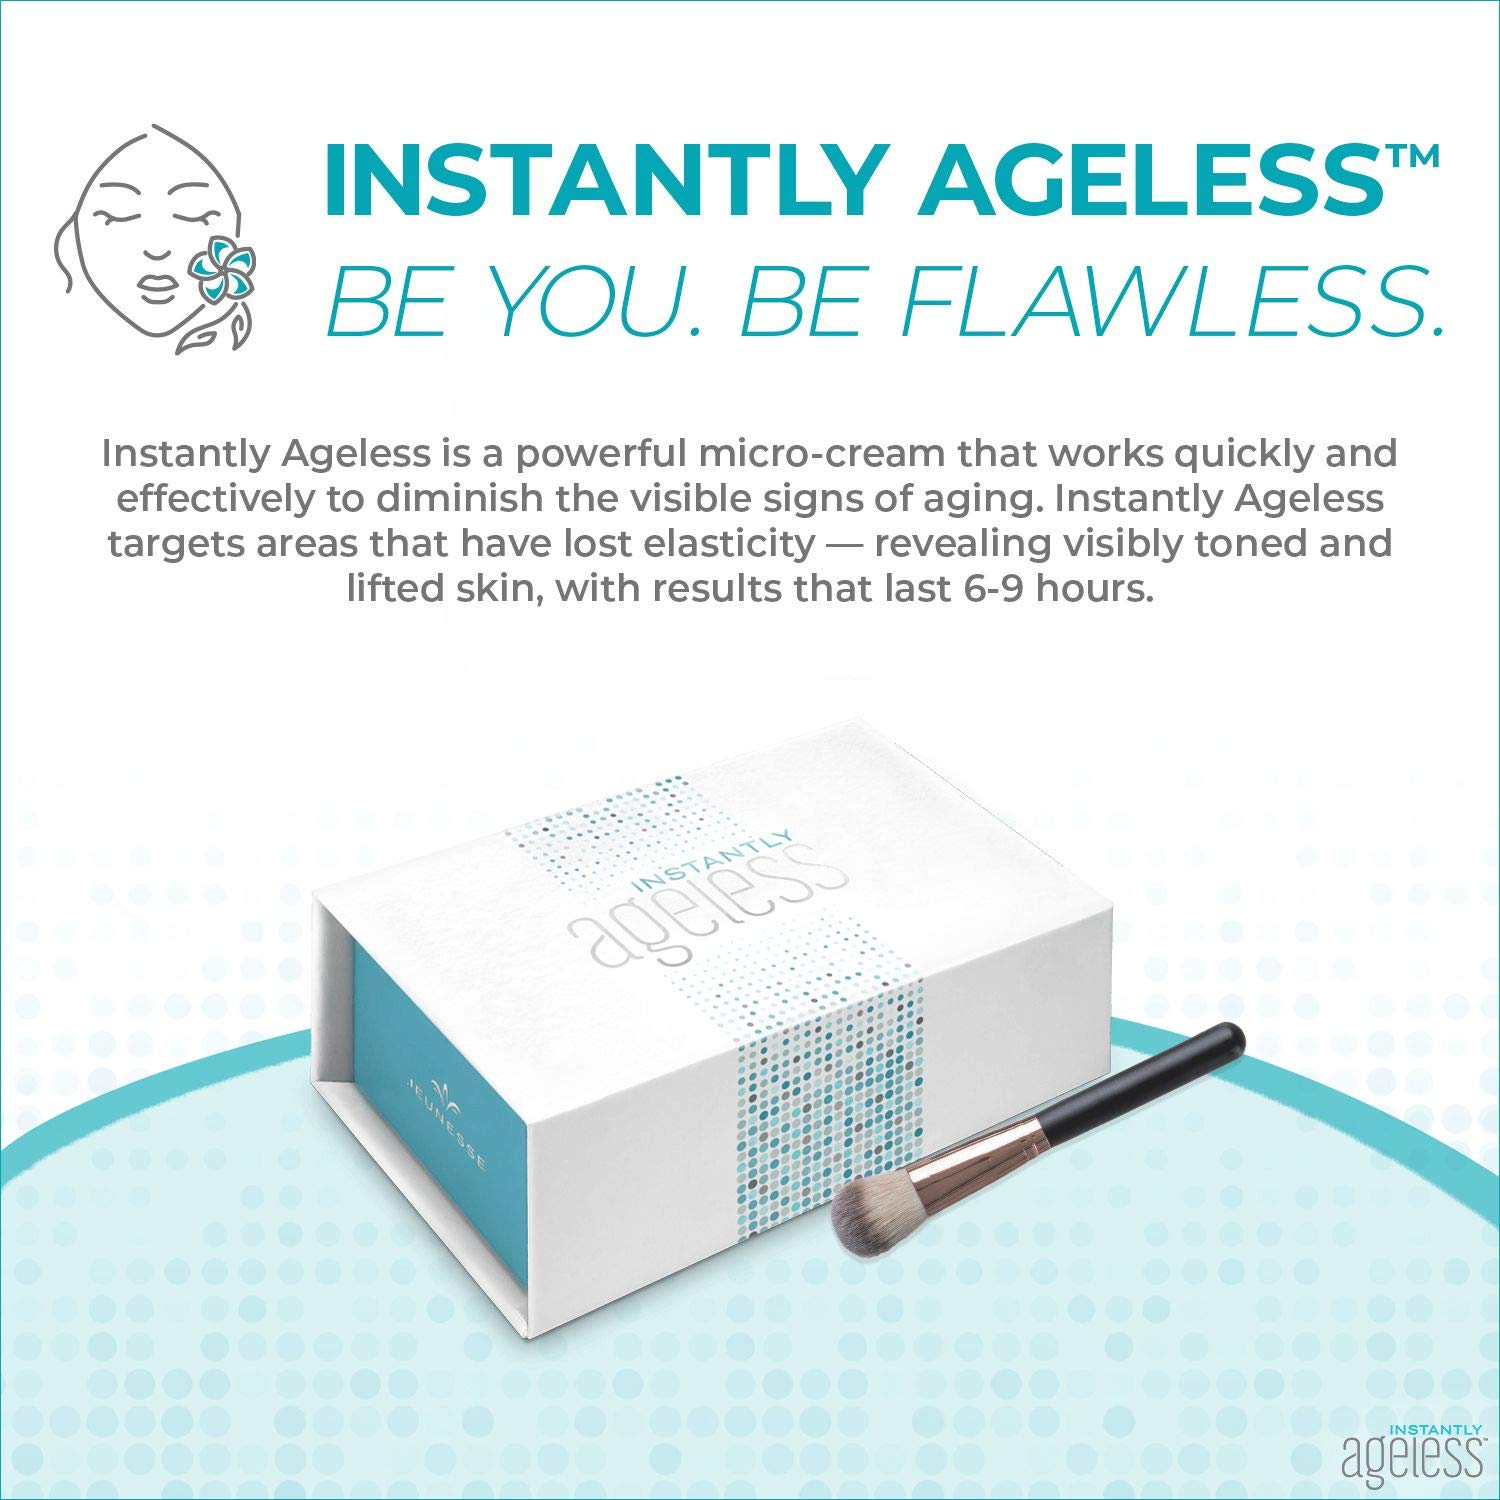 Buy and sell bitcoins instantly ageless ingredients spread betting tipstersreview